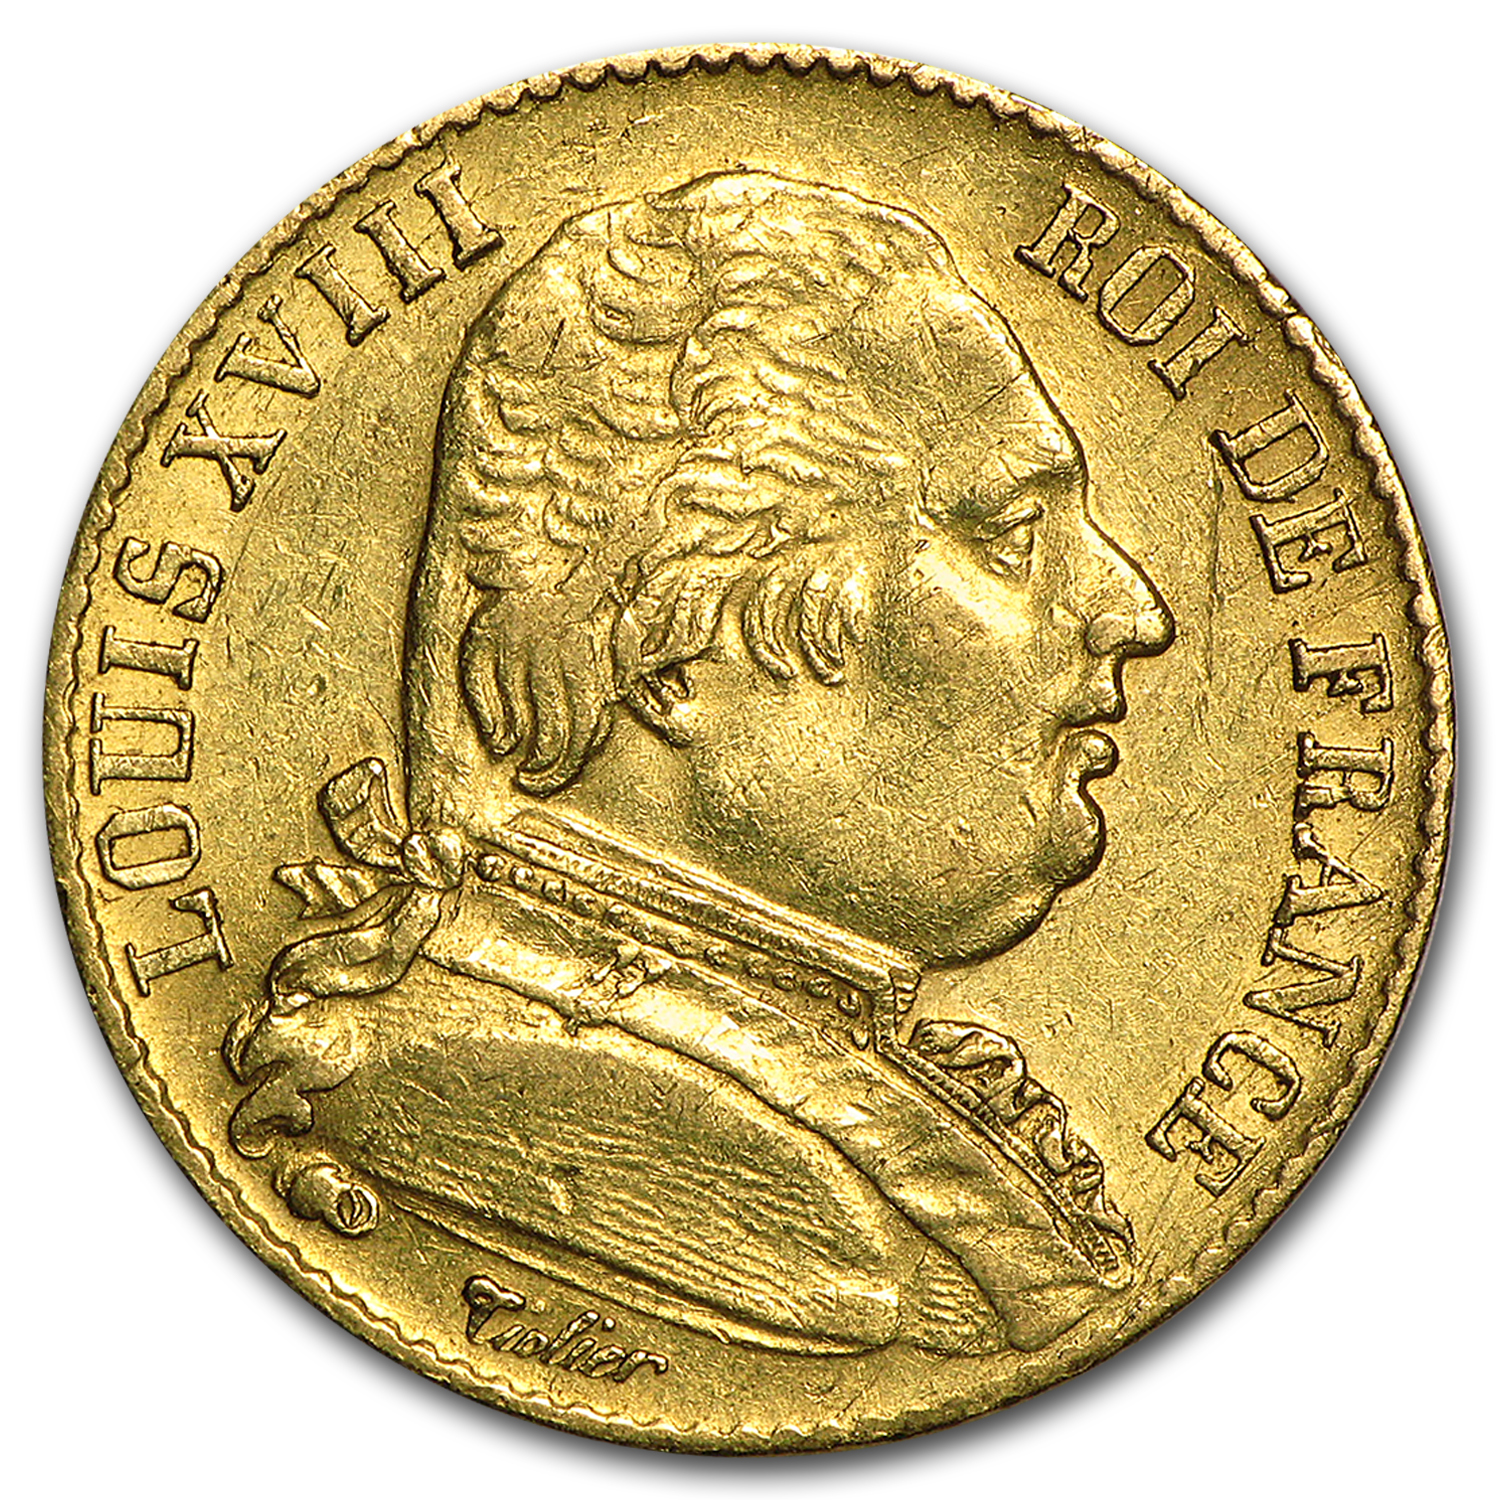 France Gold 20 France (1814-1815 Louis XVIII) (XF)